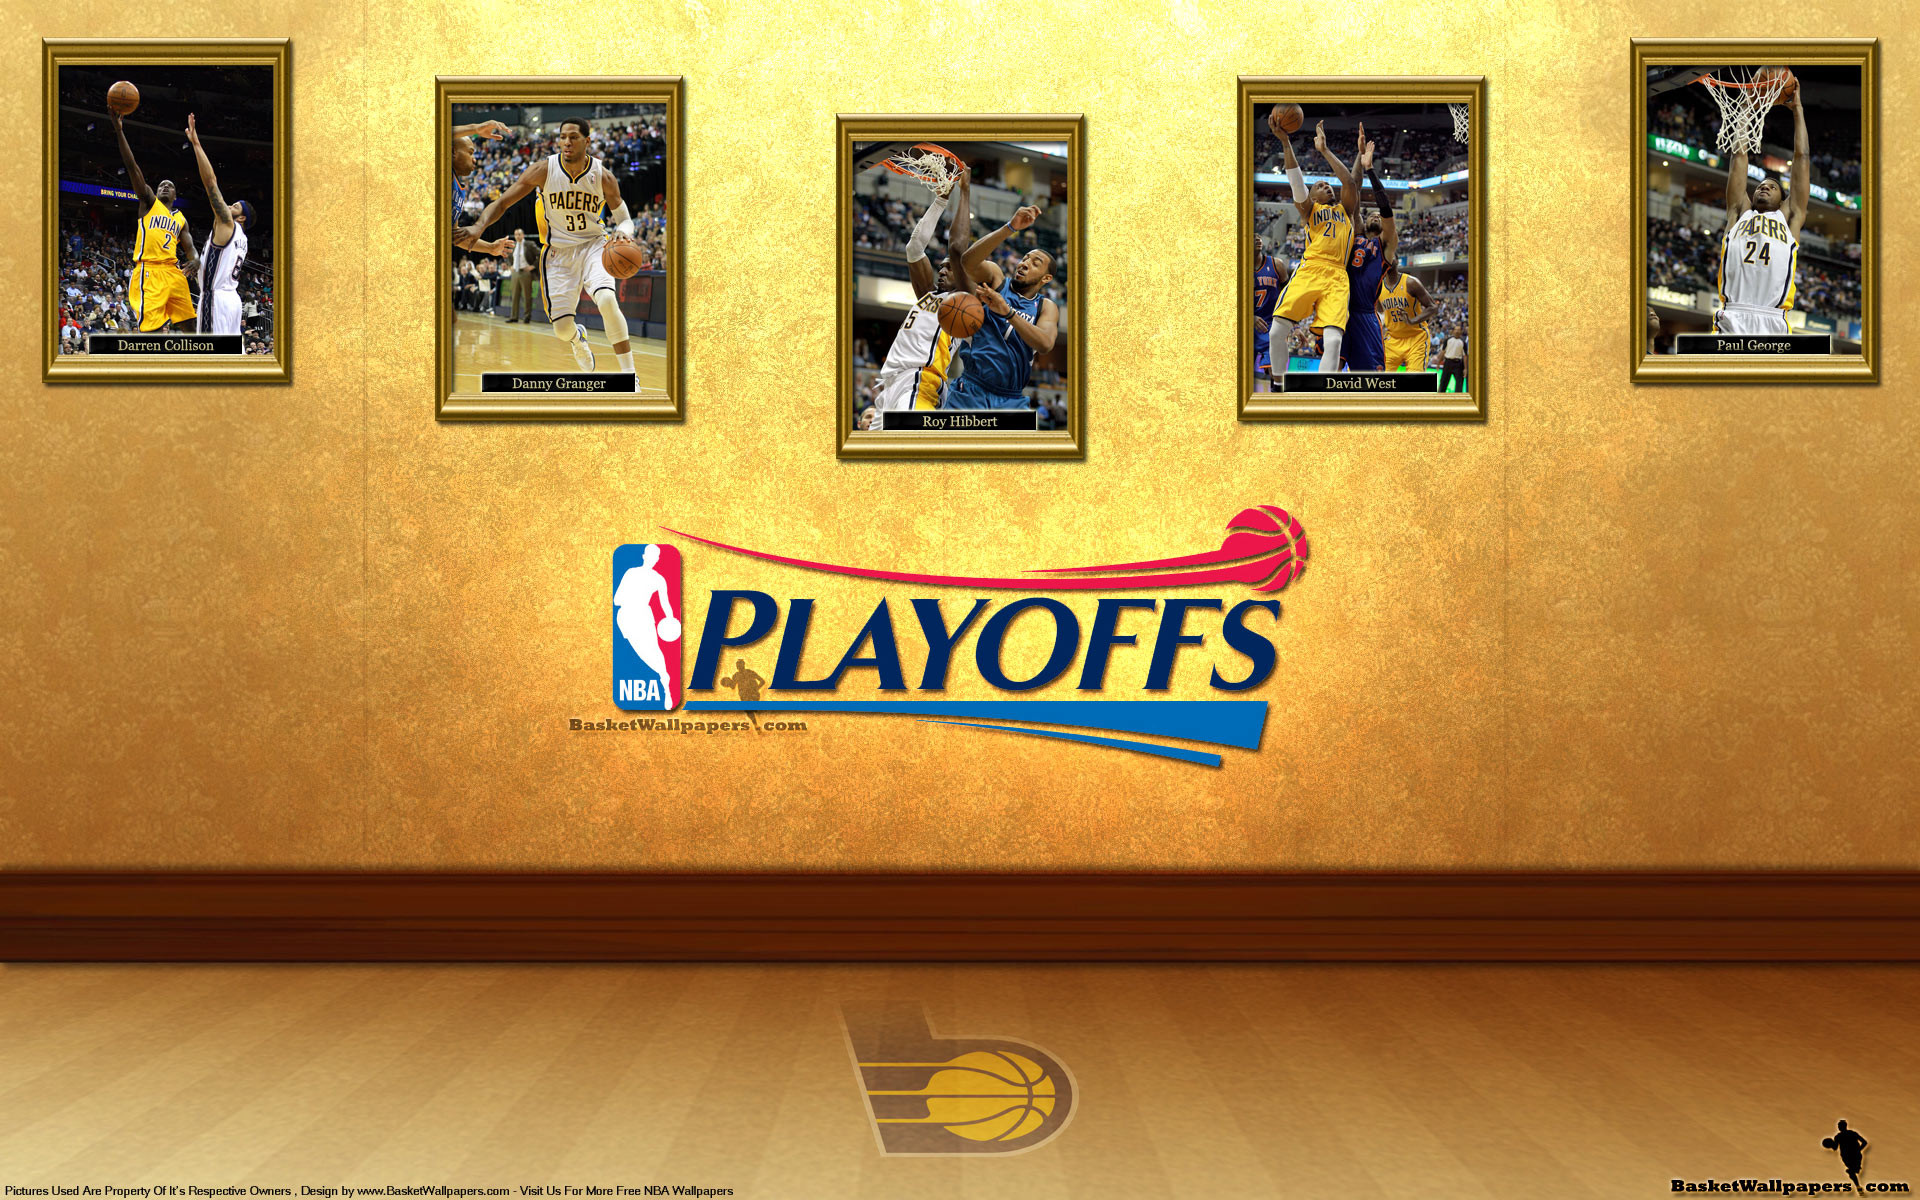 1920x1200 Indiana Pacers See You In Playoffs 2012 Wallpaper